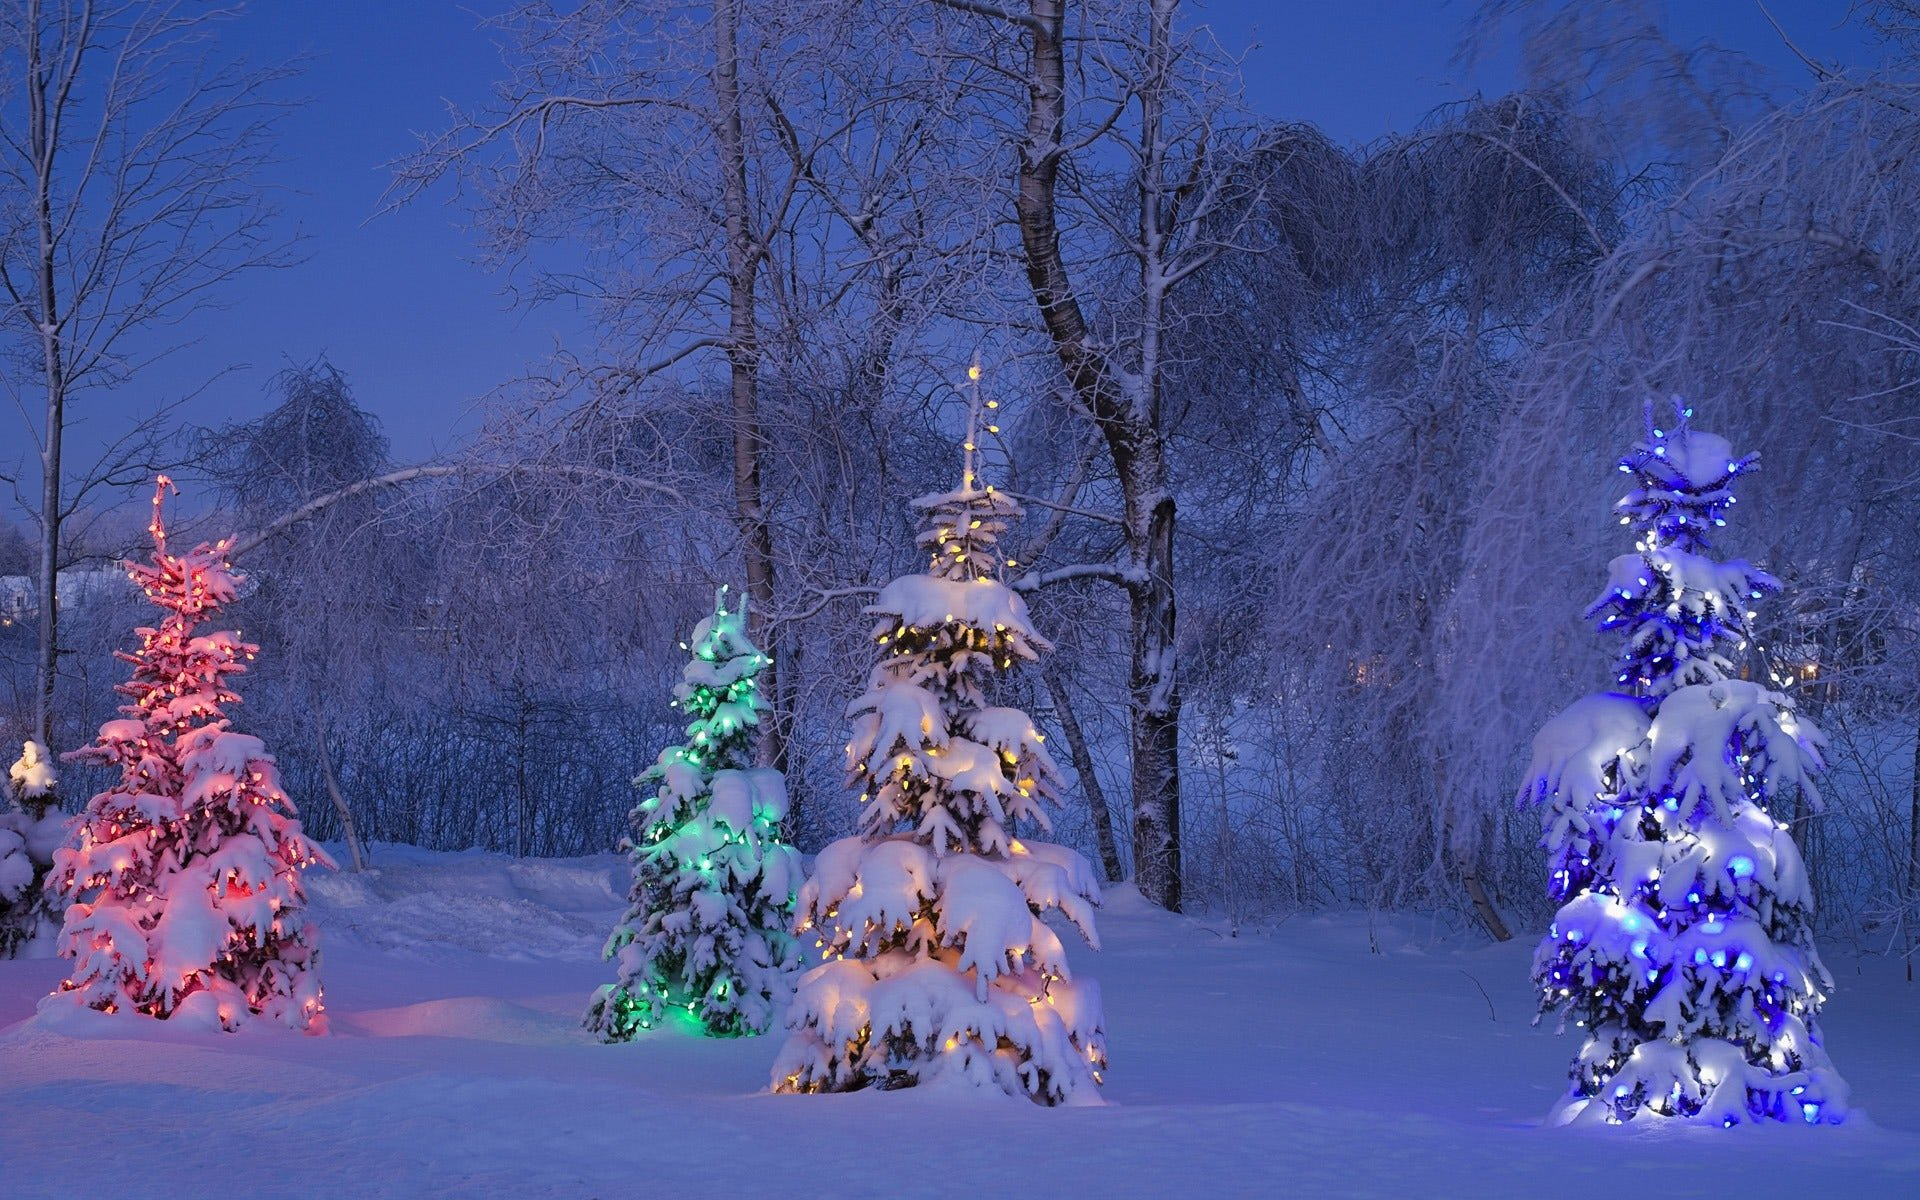 Free Christmas Desktop Wallpaper Decorate Your Windows Desktop for Christmas Ghacks Tech News